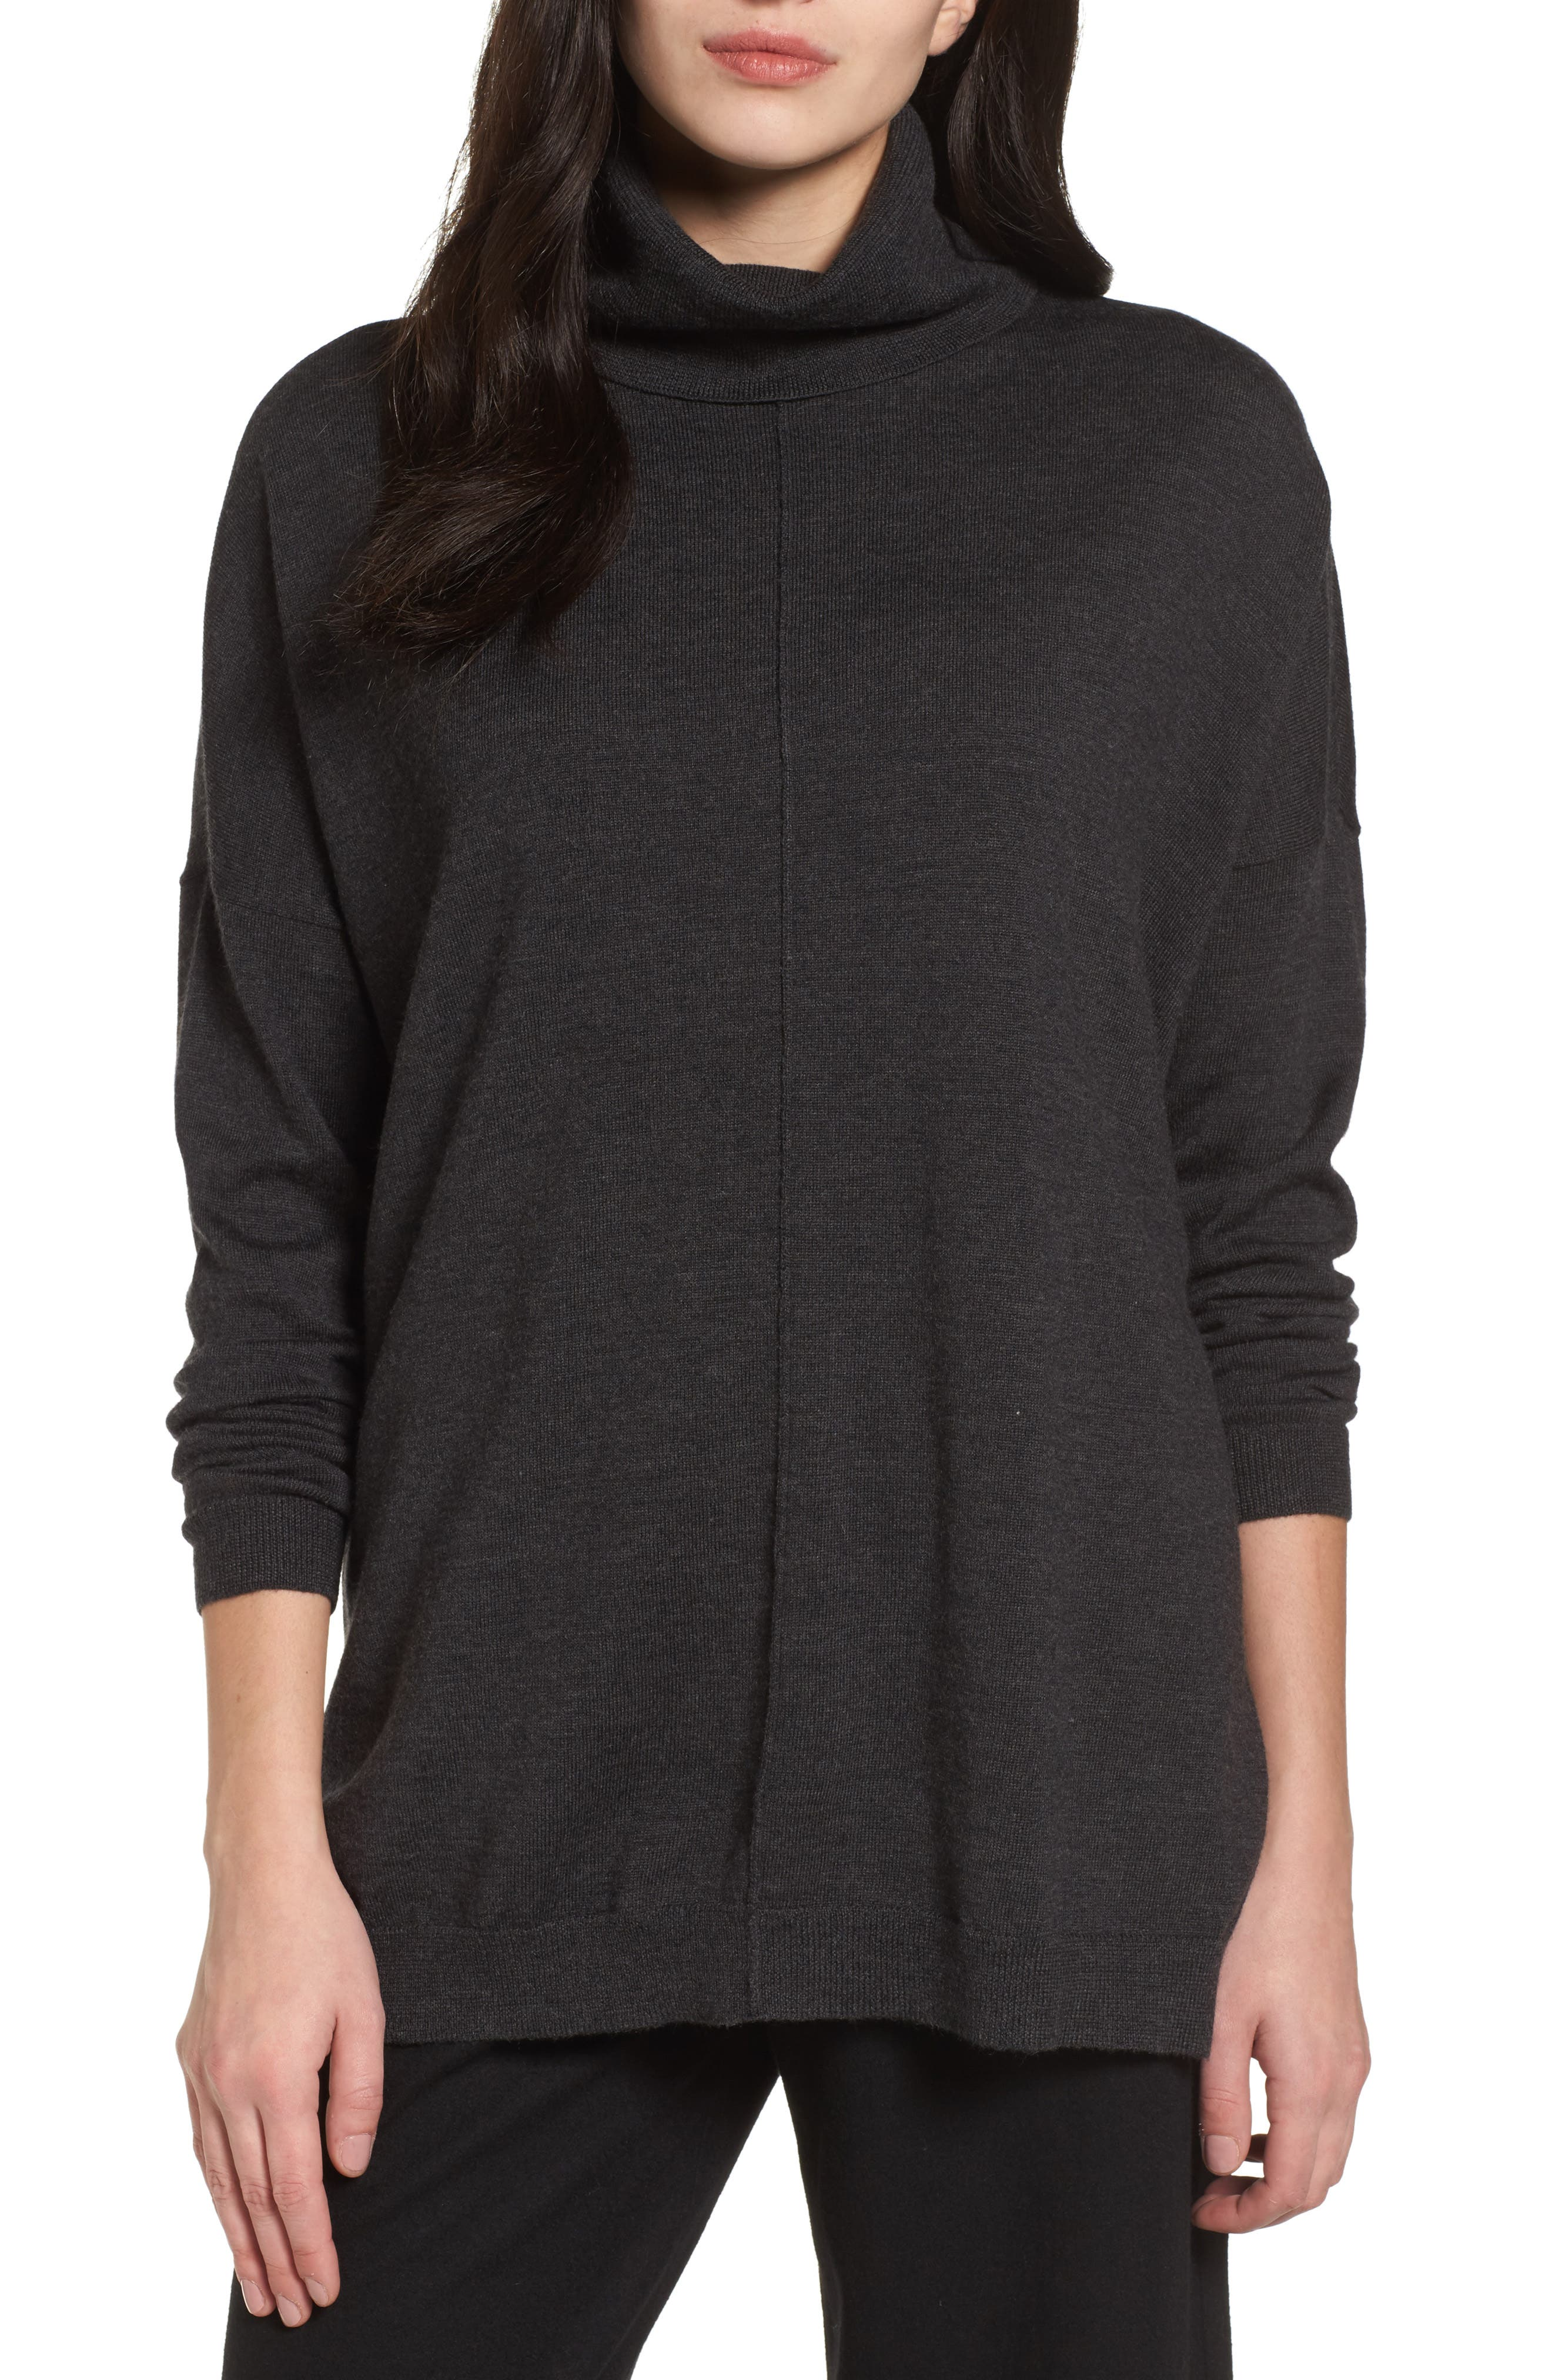 Eileen Fisher Merino Wool Boxy Turtleneck Sweater (Regular & Petite)